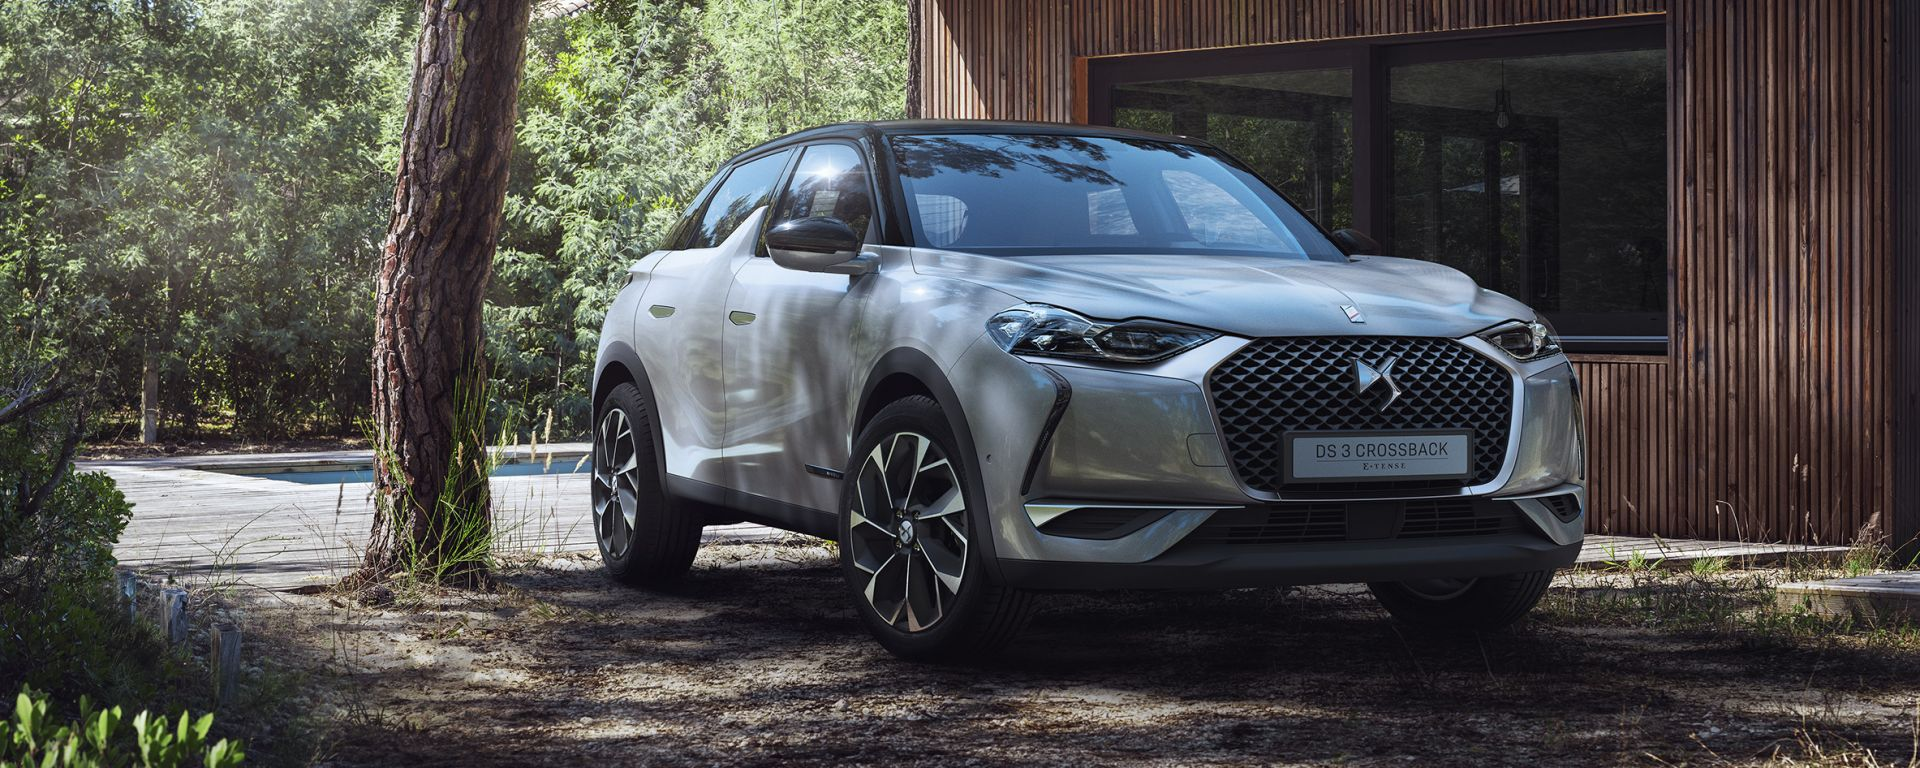 DS3 Crossback 2019 frontale